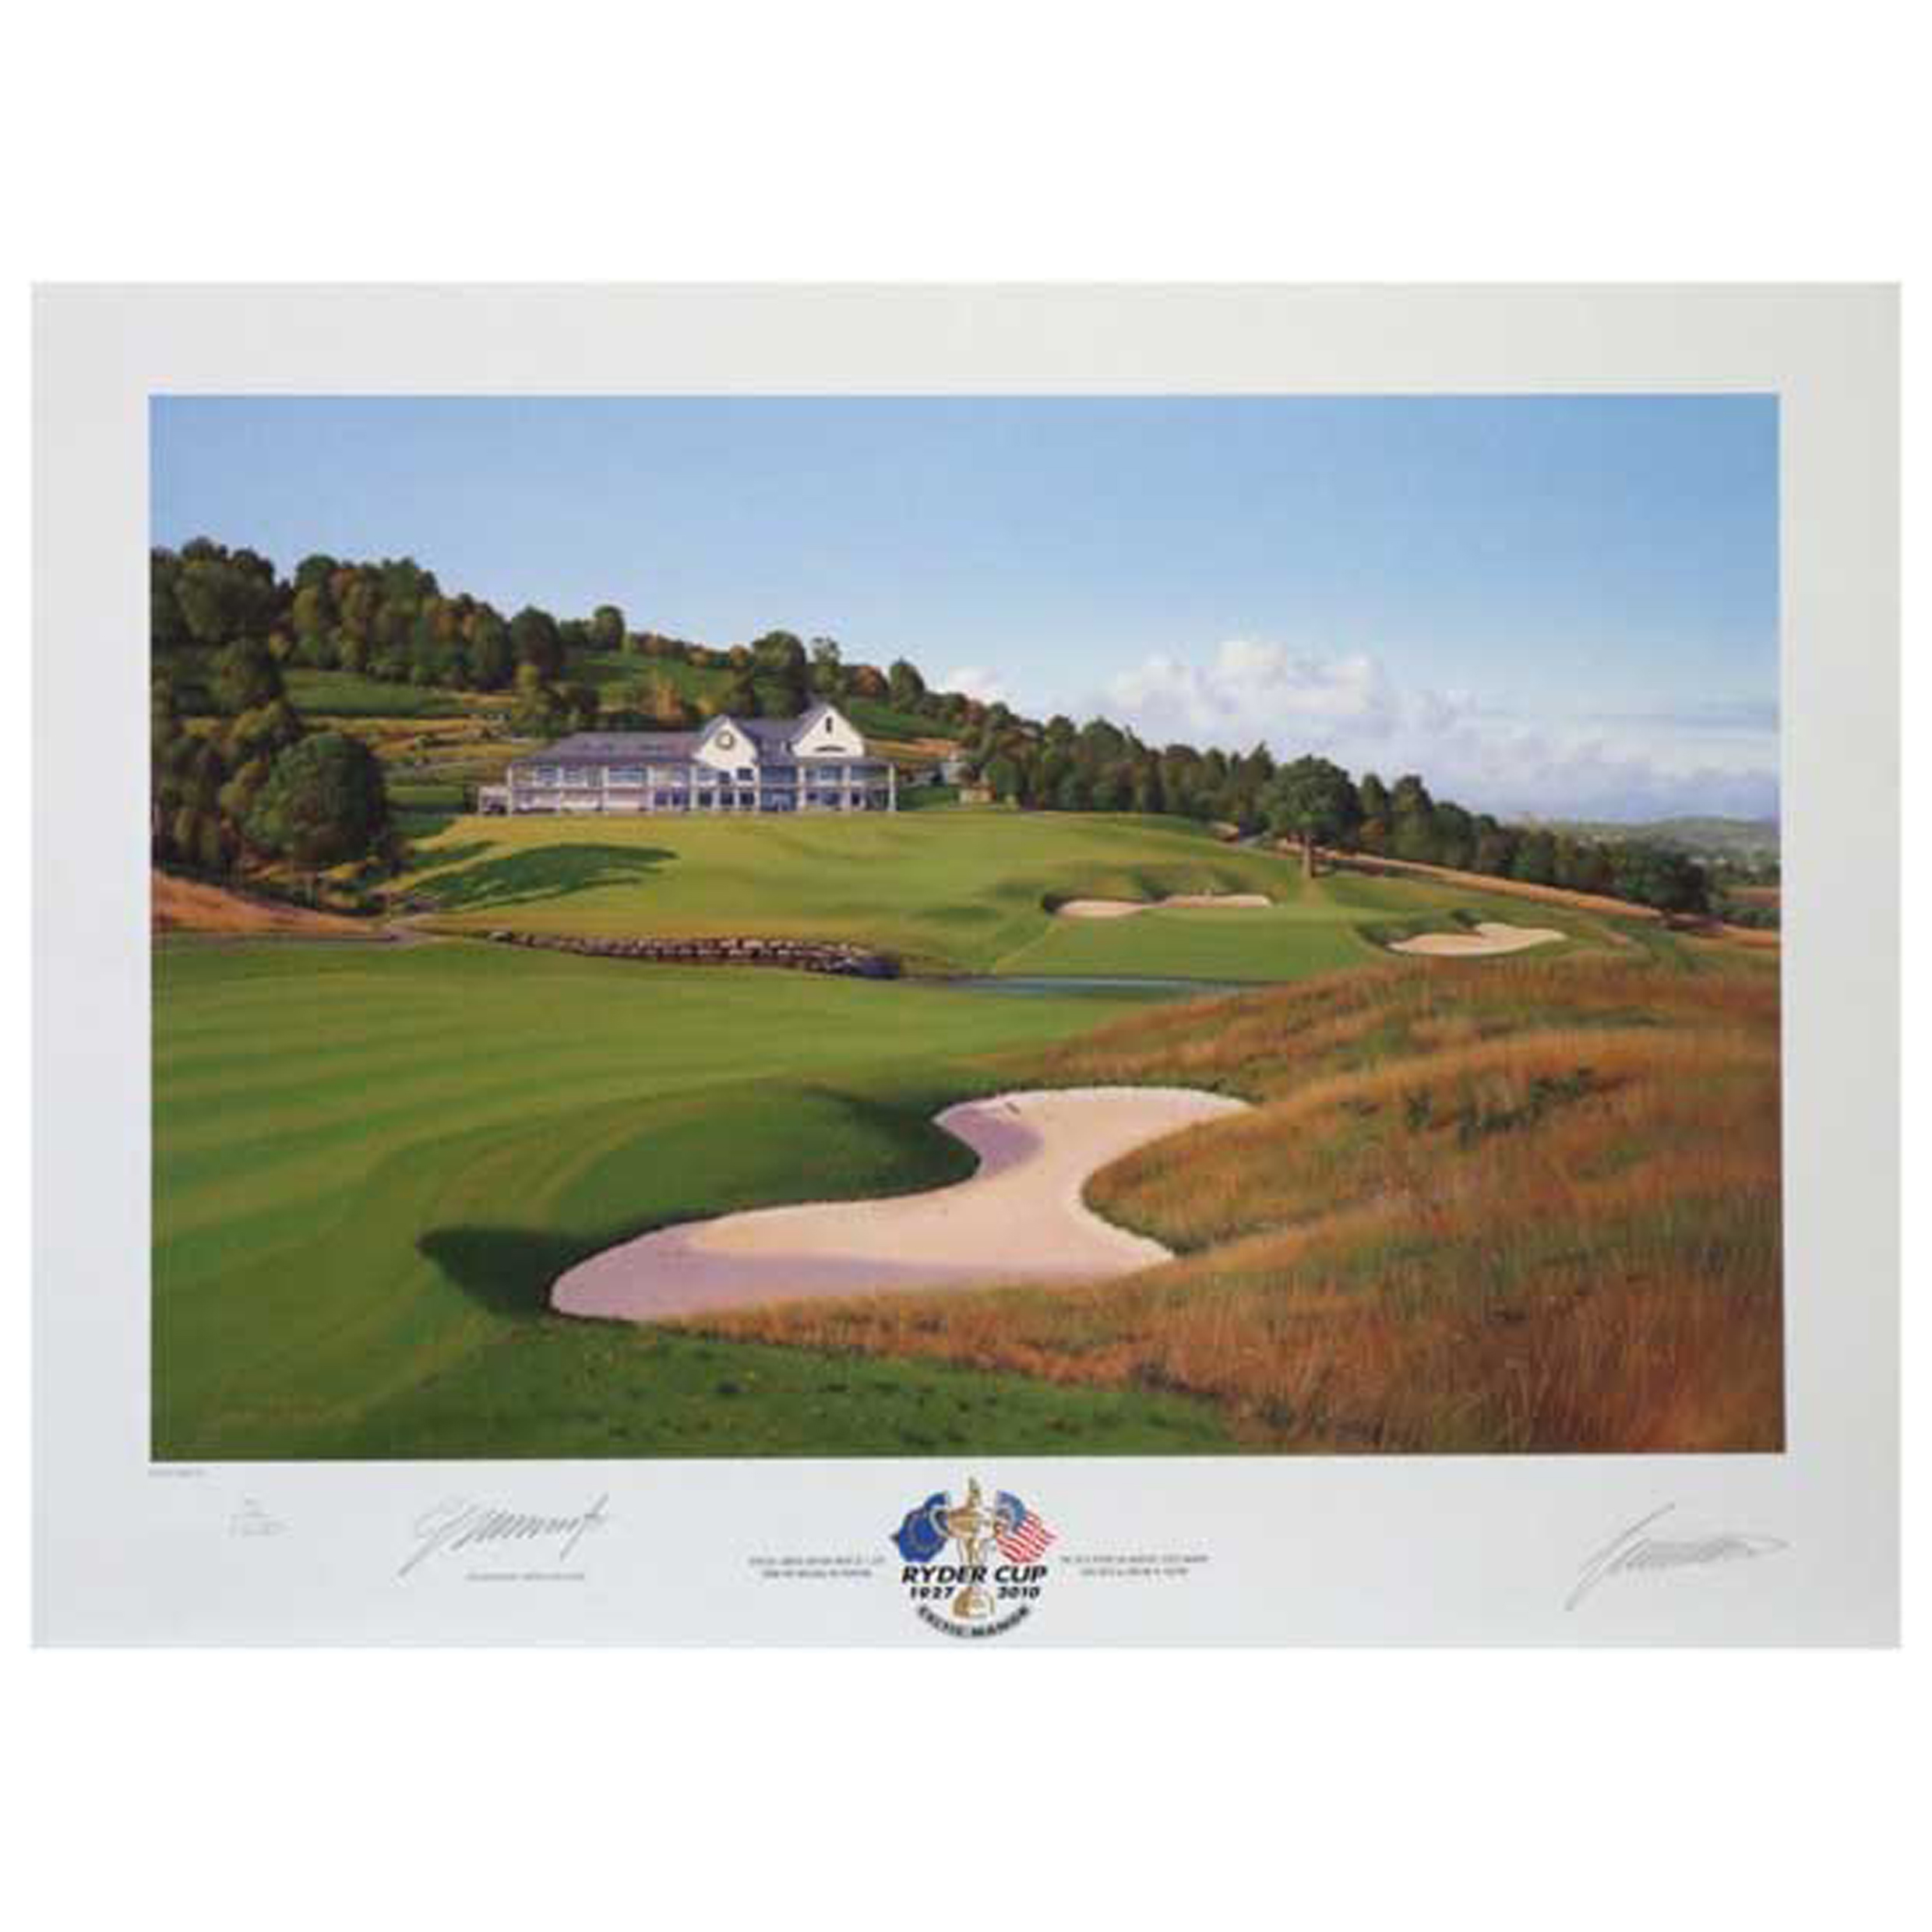 The Ryder Cup Celtic Manor 2010 18th Hole Limited Edition Print